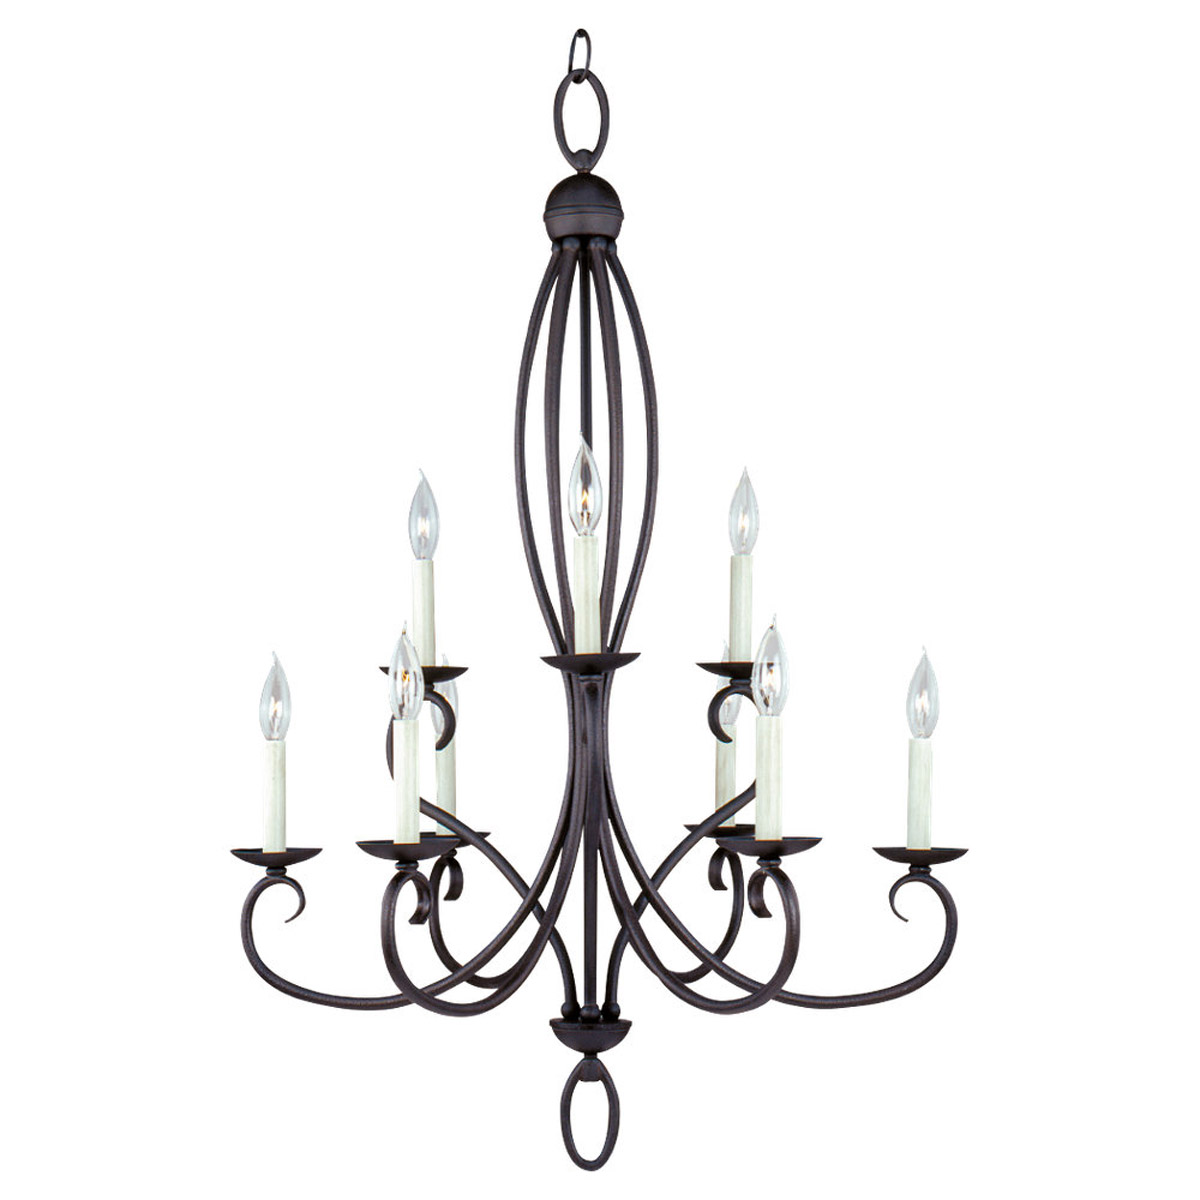 Sea Gull Lighting Pemberton 9 Light Chandelier in Peppercorn 31075-799